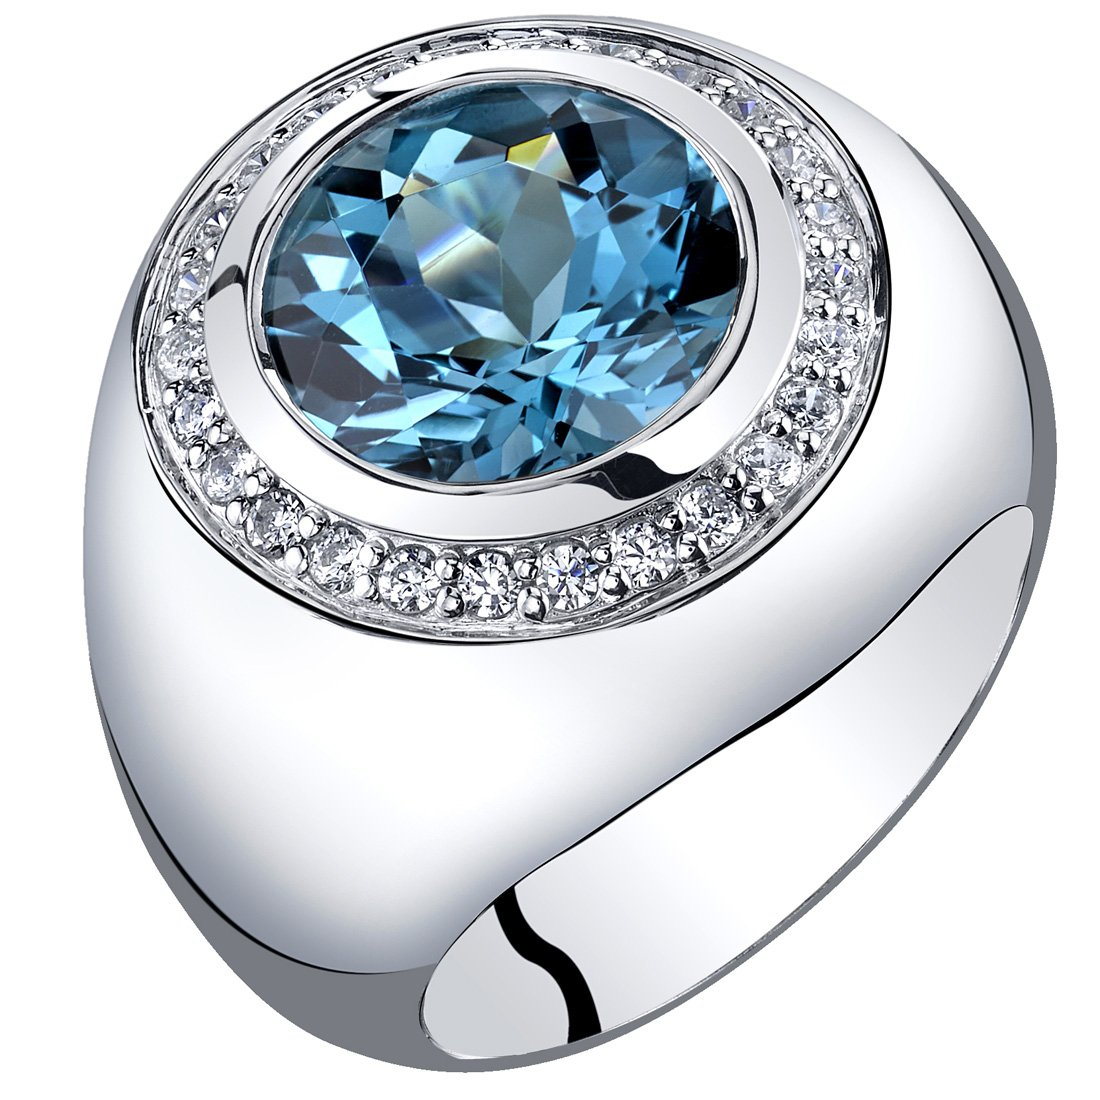 Mens 5.50 Carats London Blue Topaz Signet Ring Sterling Silver Sizes 8 to 13